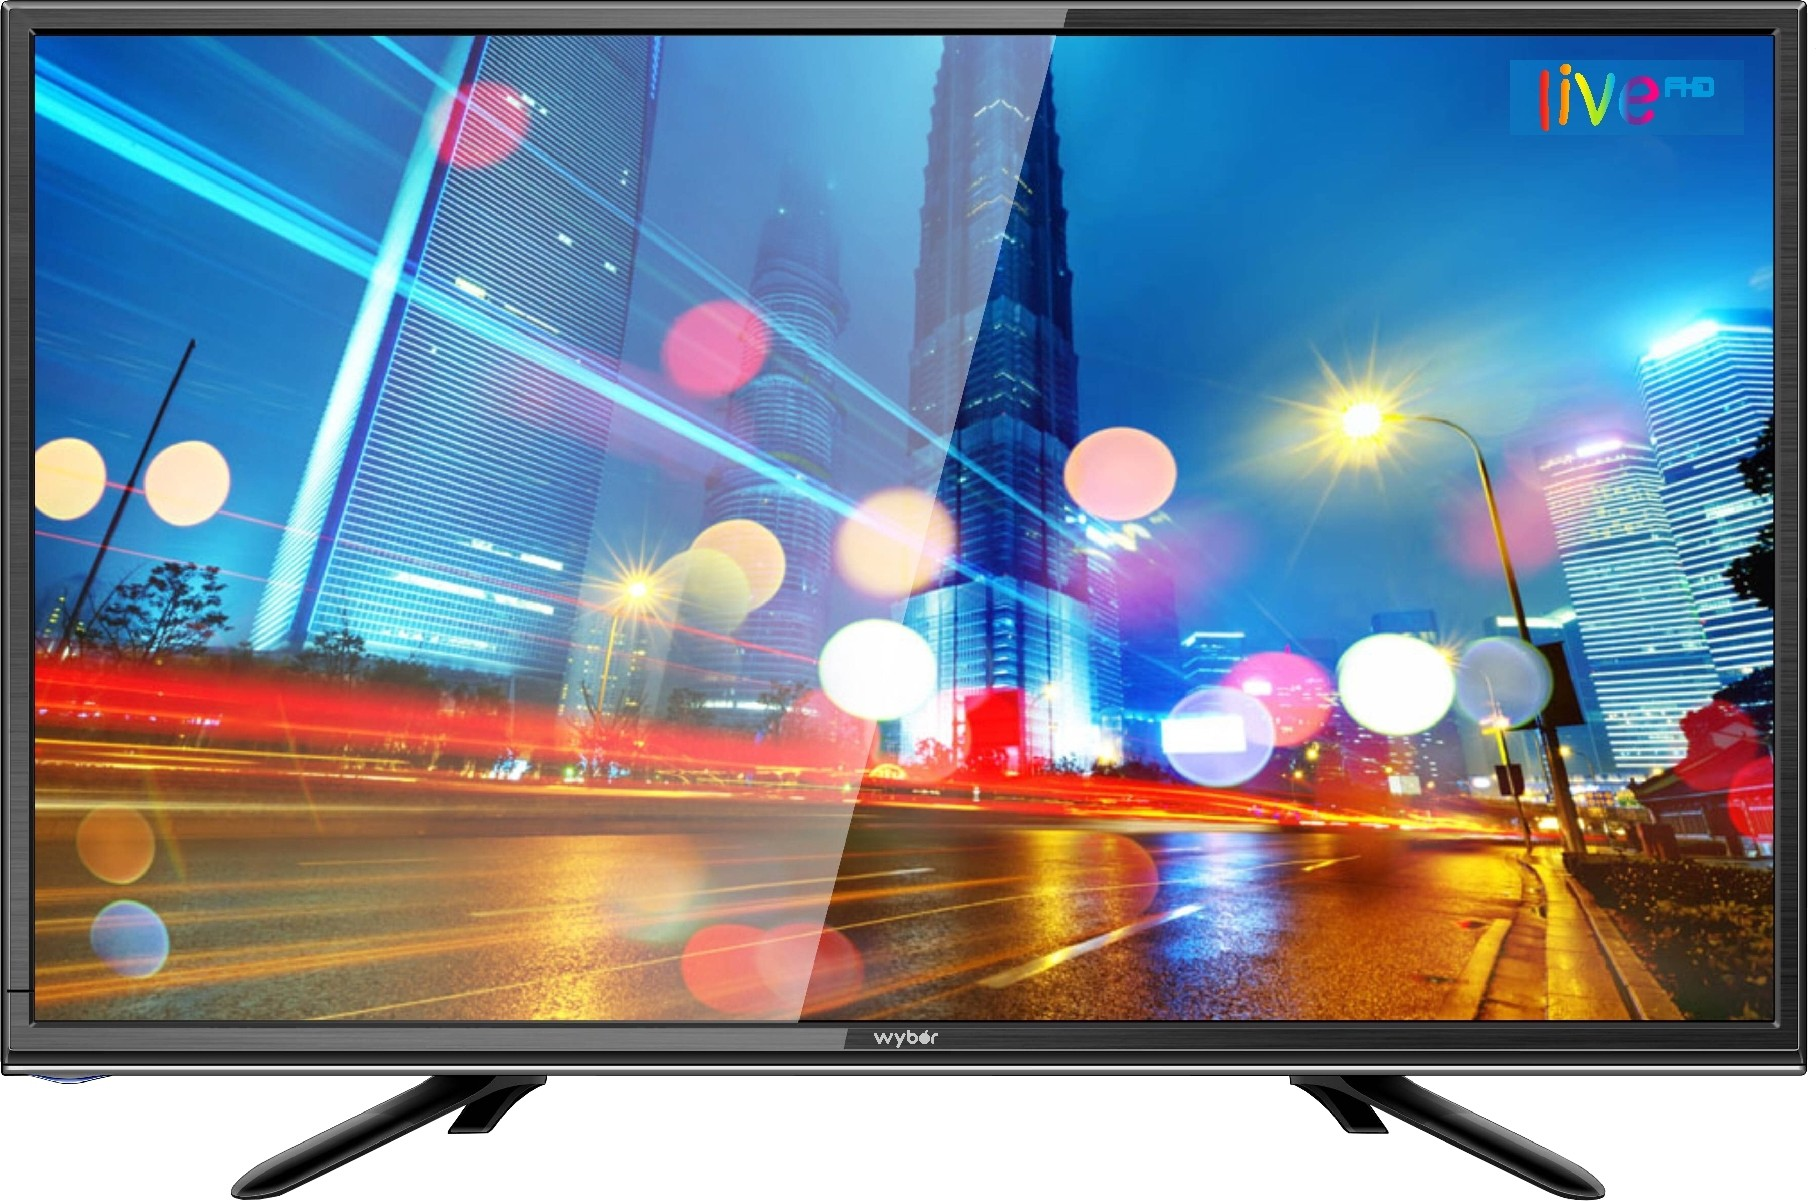 WYBOR W22 55 DAS 22 Inches Full HD LED TV